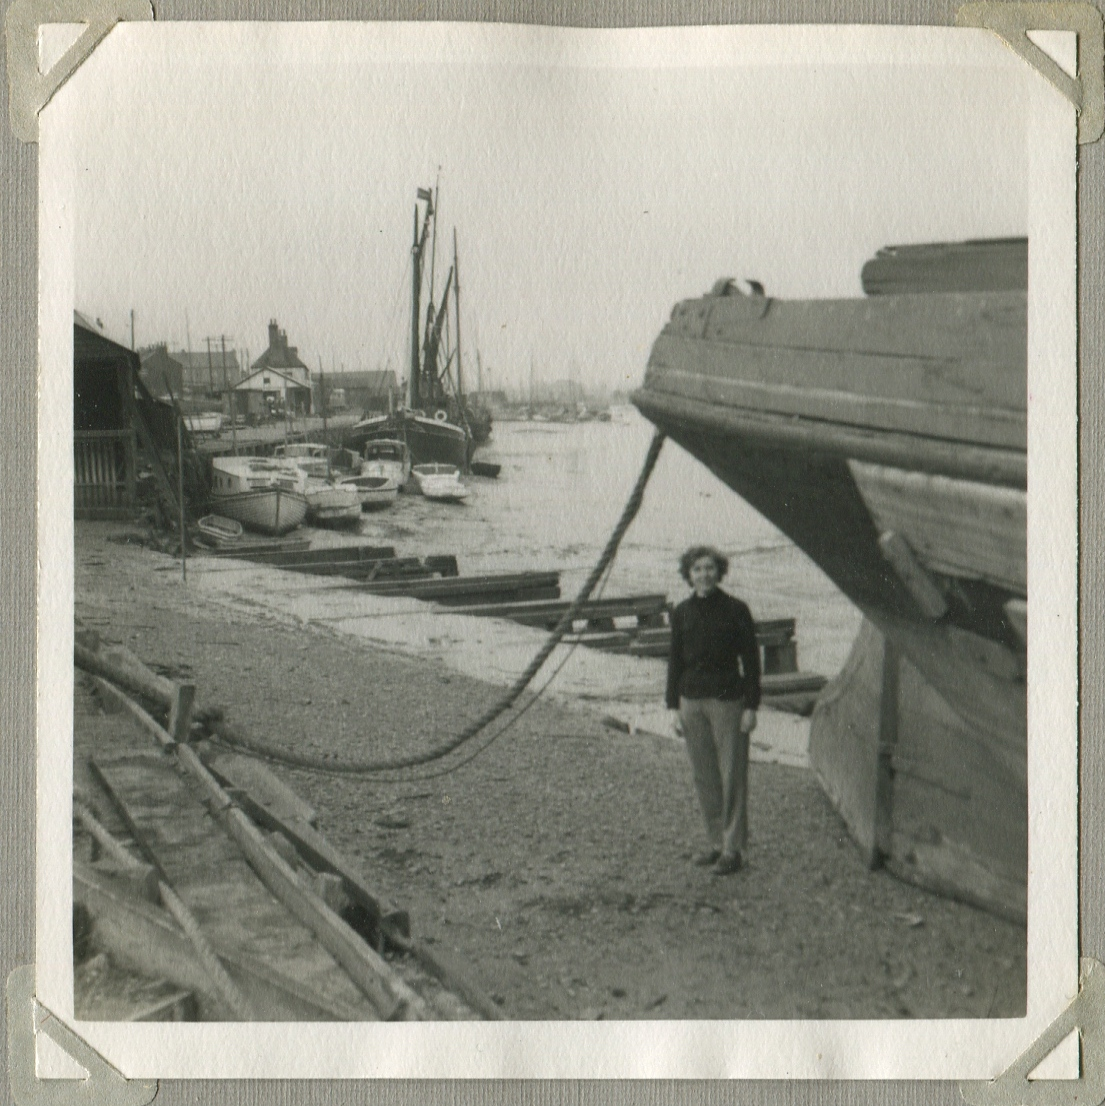 My father's photos 1955-7 1